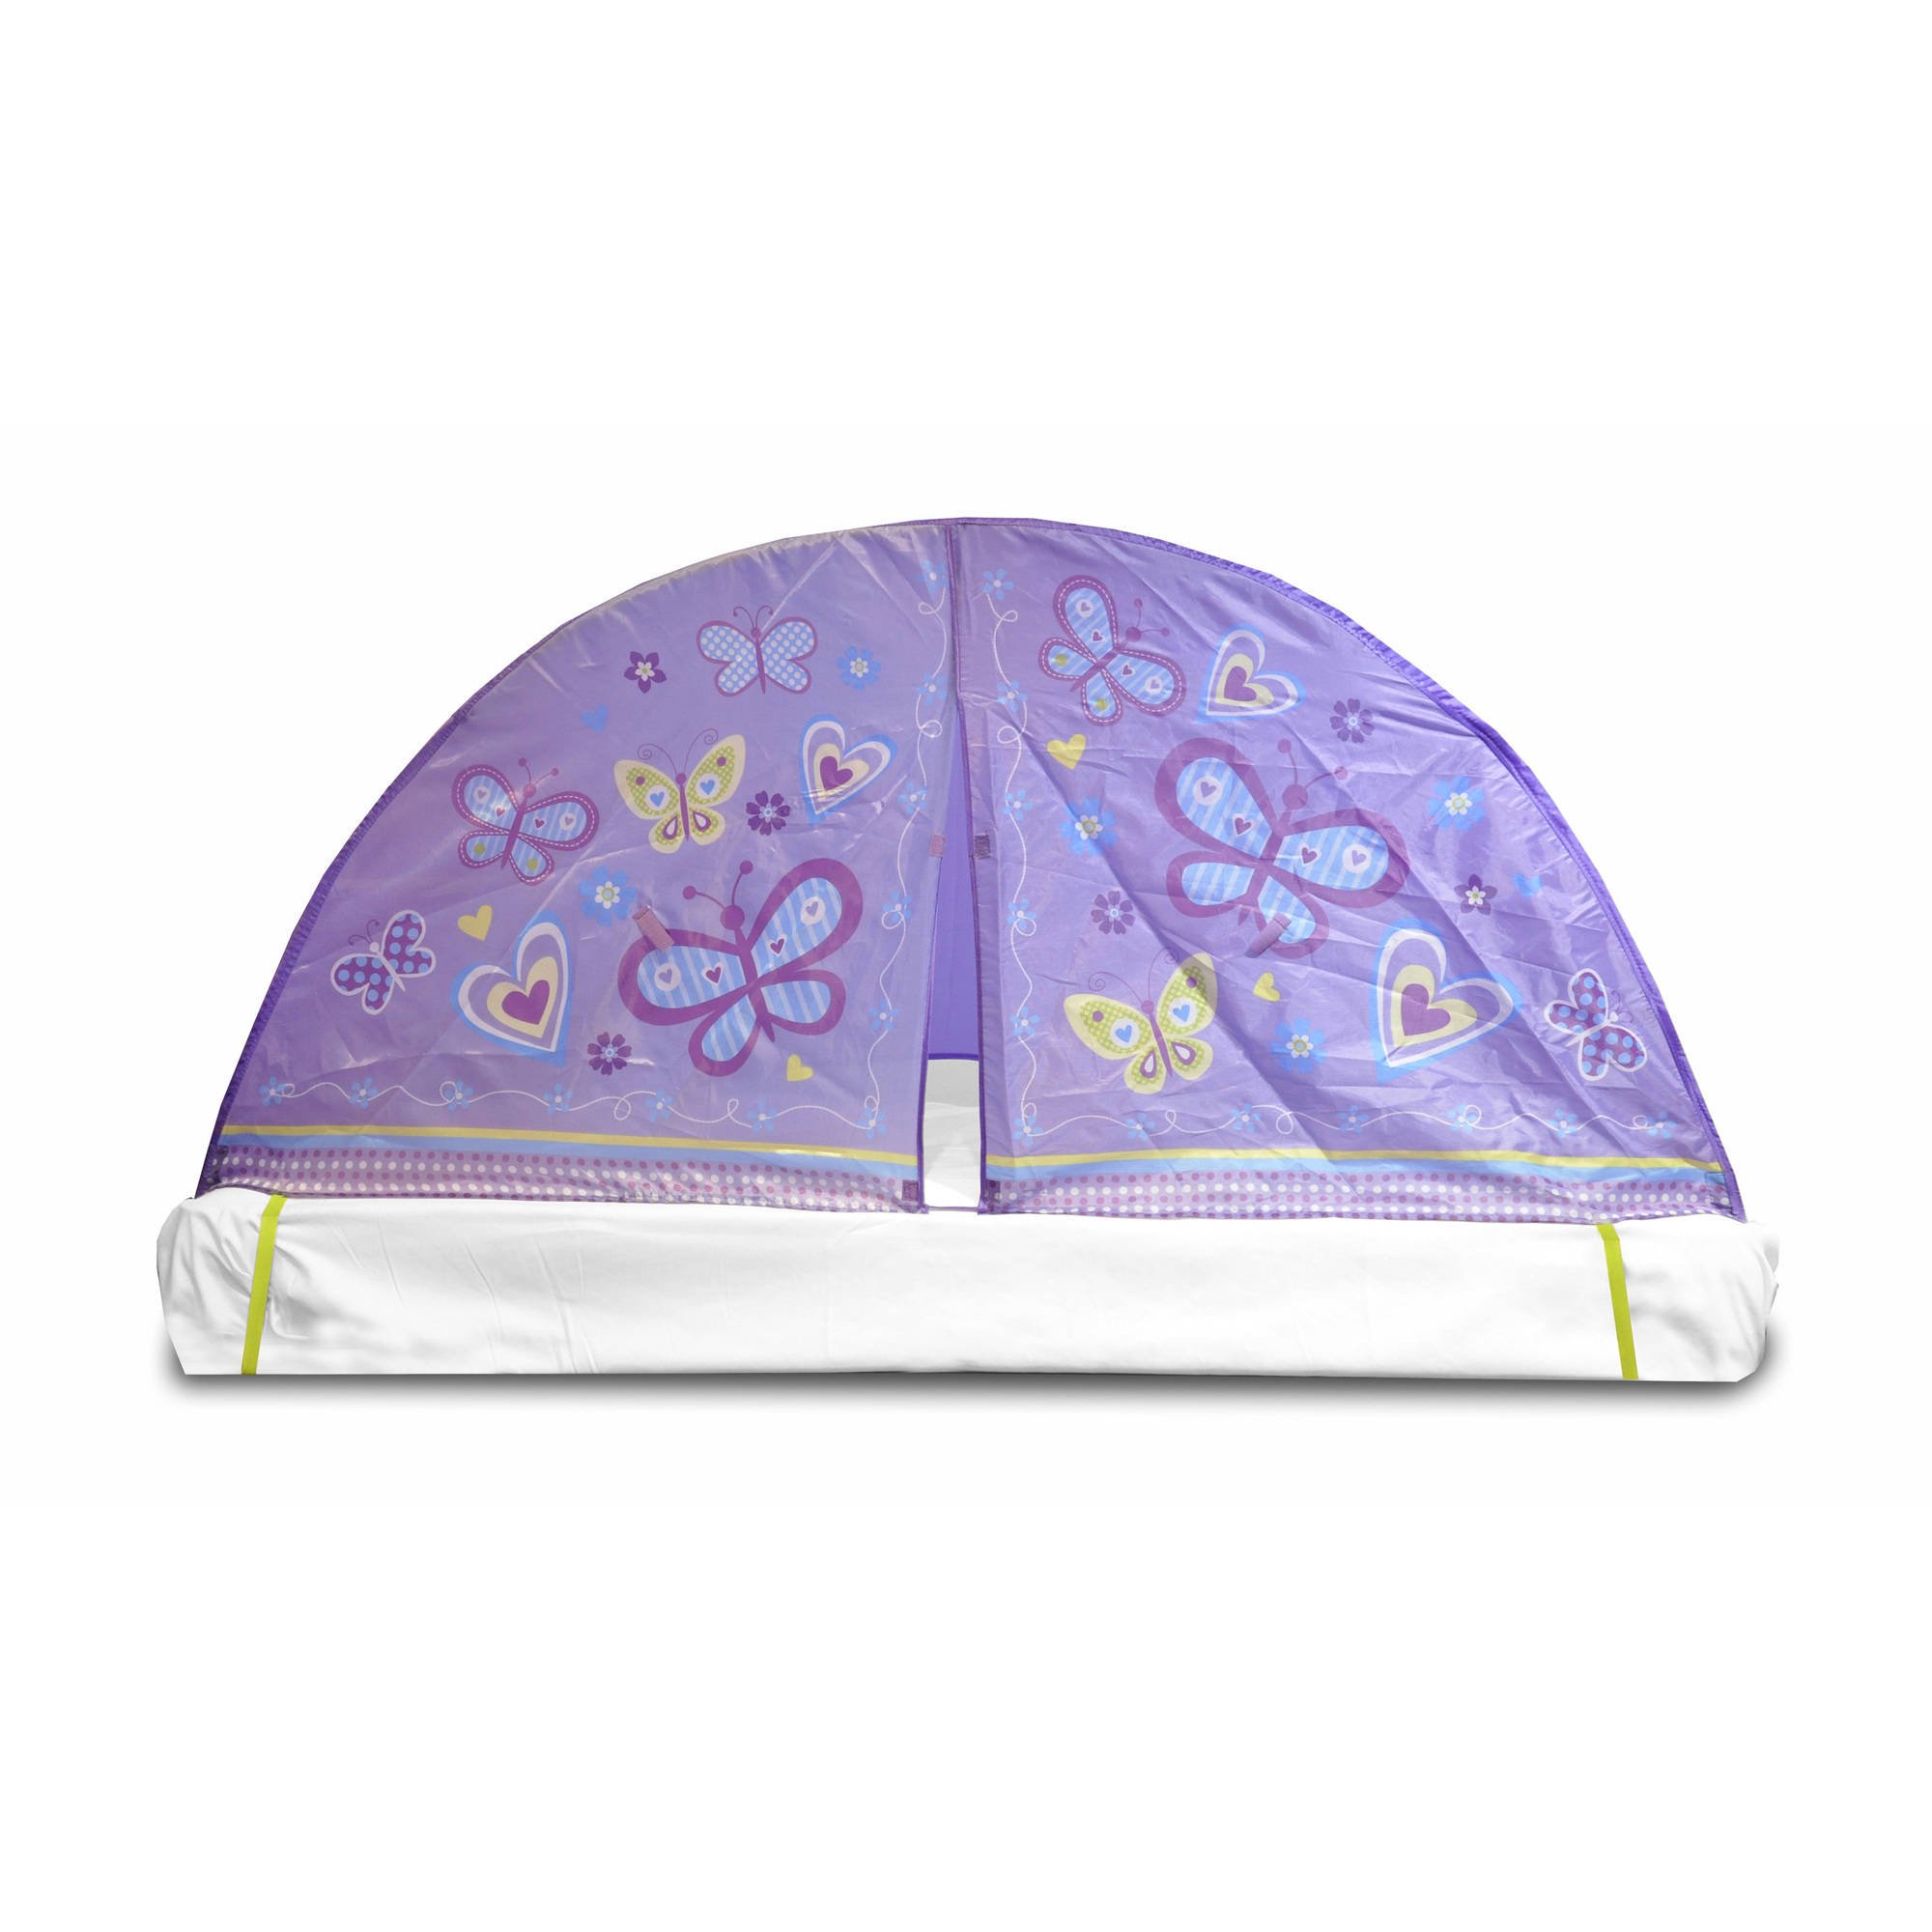 Kids Scene Lavender Butterfly Play Bed Tent Image 2 of 2  sc 1 st  Walmart & Kids Scene Lavender Butterfly Play Bed Tent - Walmart.com